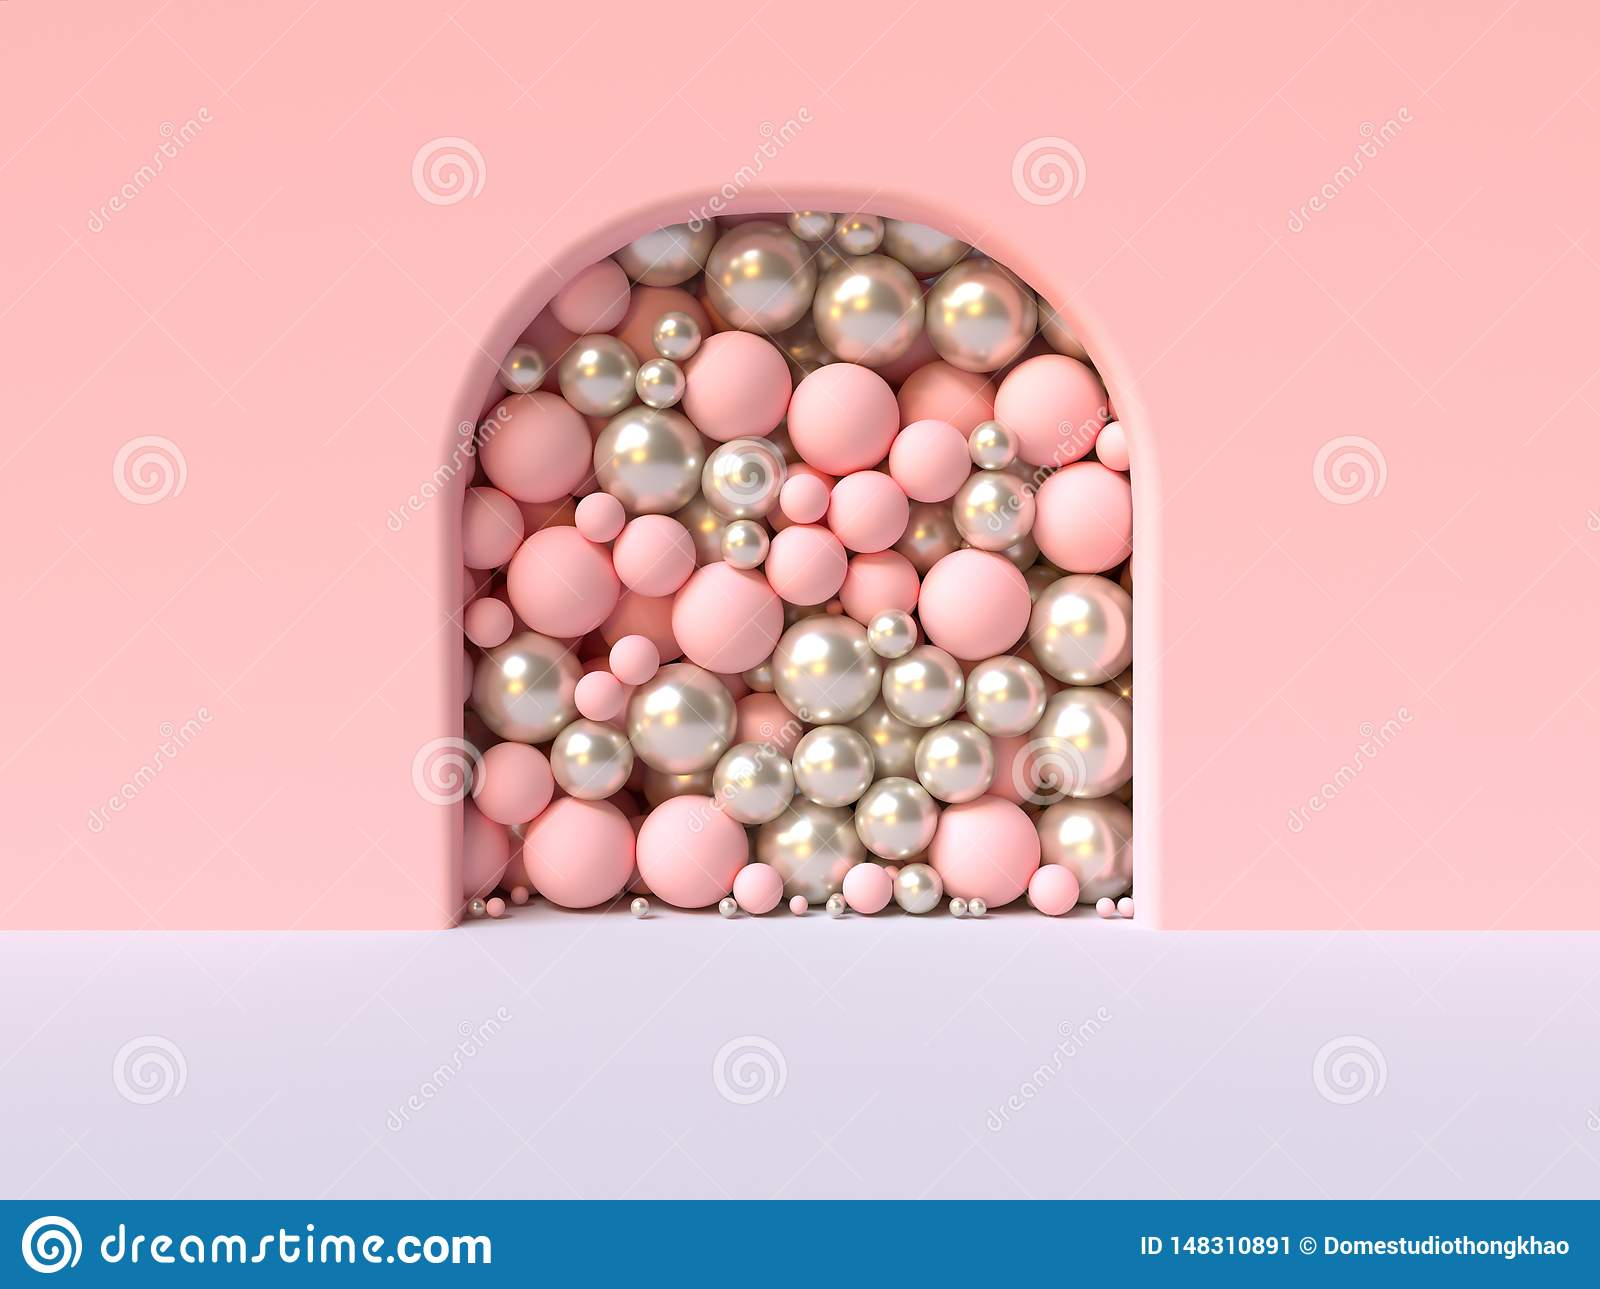 Pink wall white floor abstract curve door  pile ball/sphere in side 3d rendering